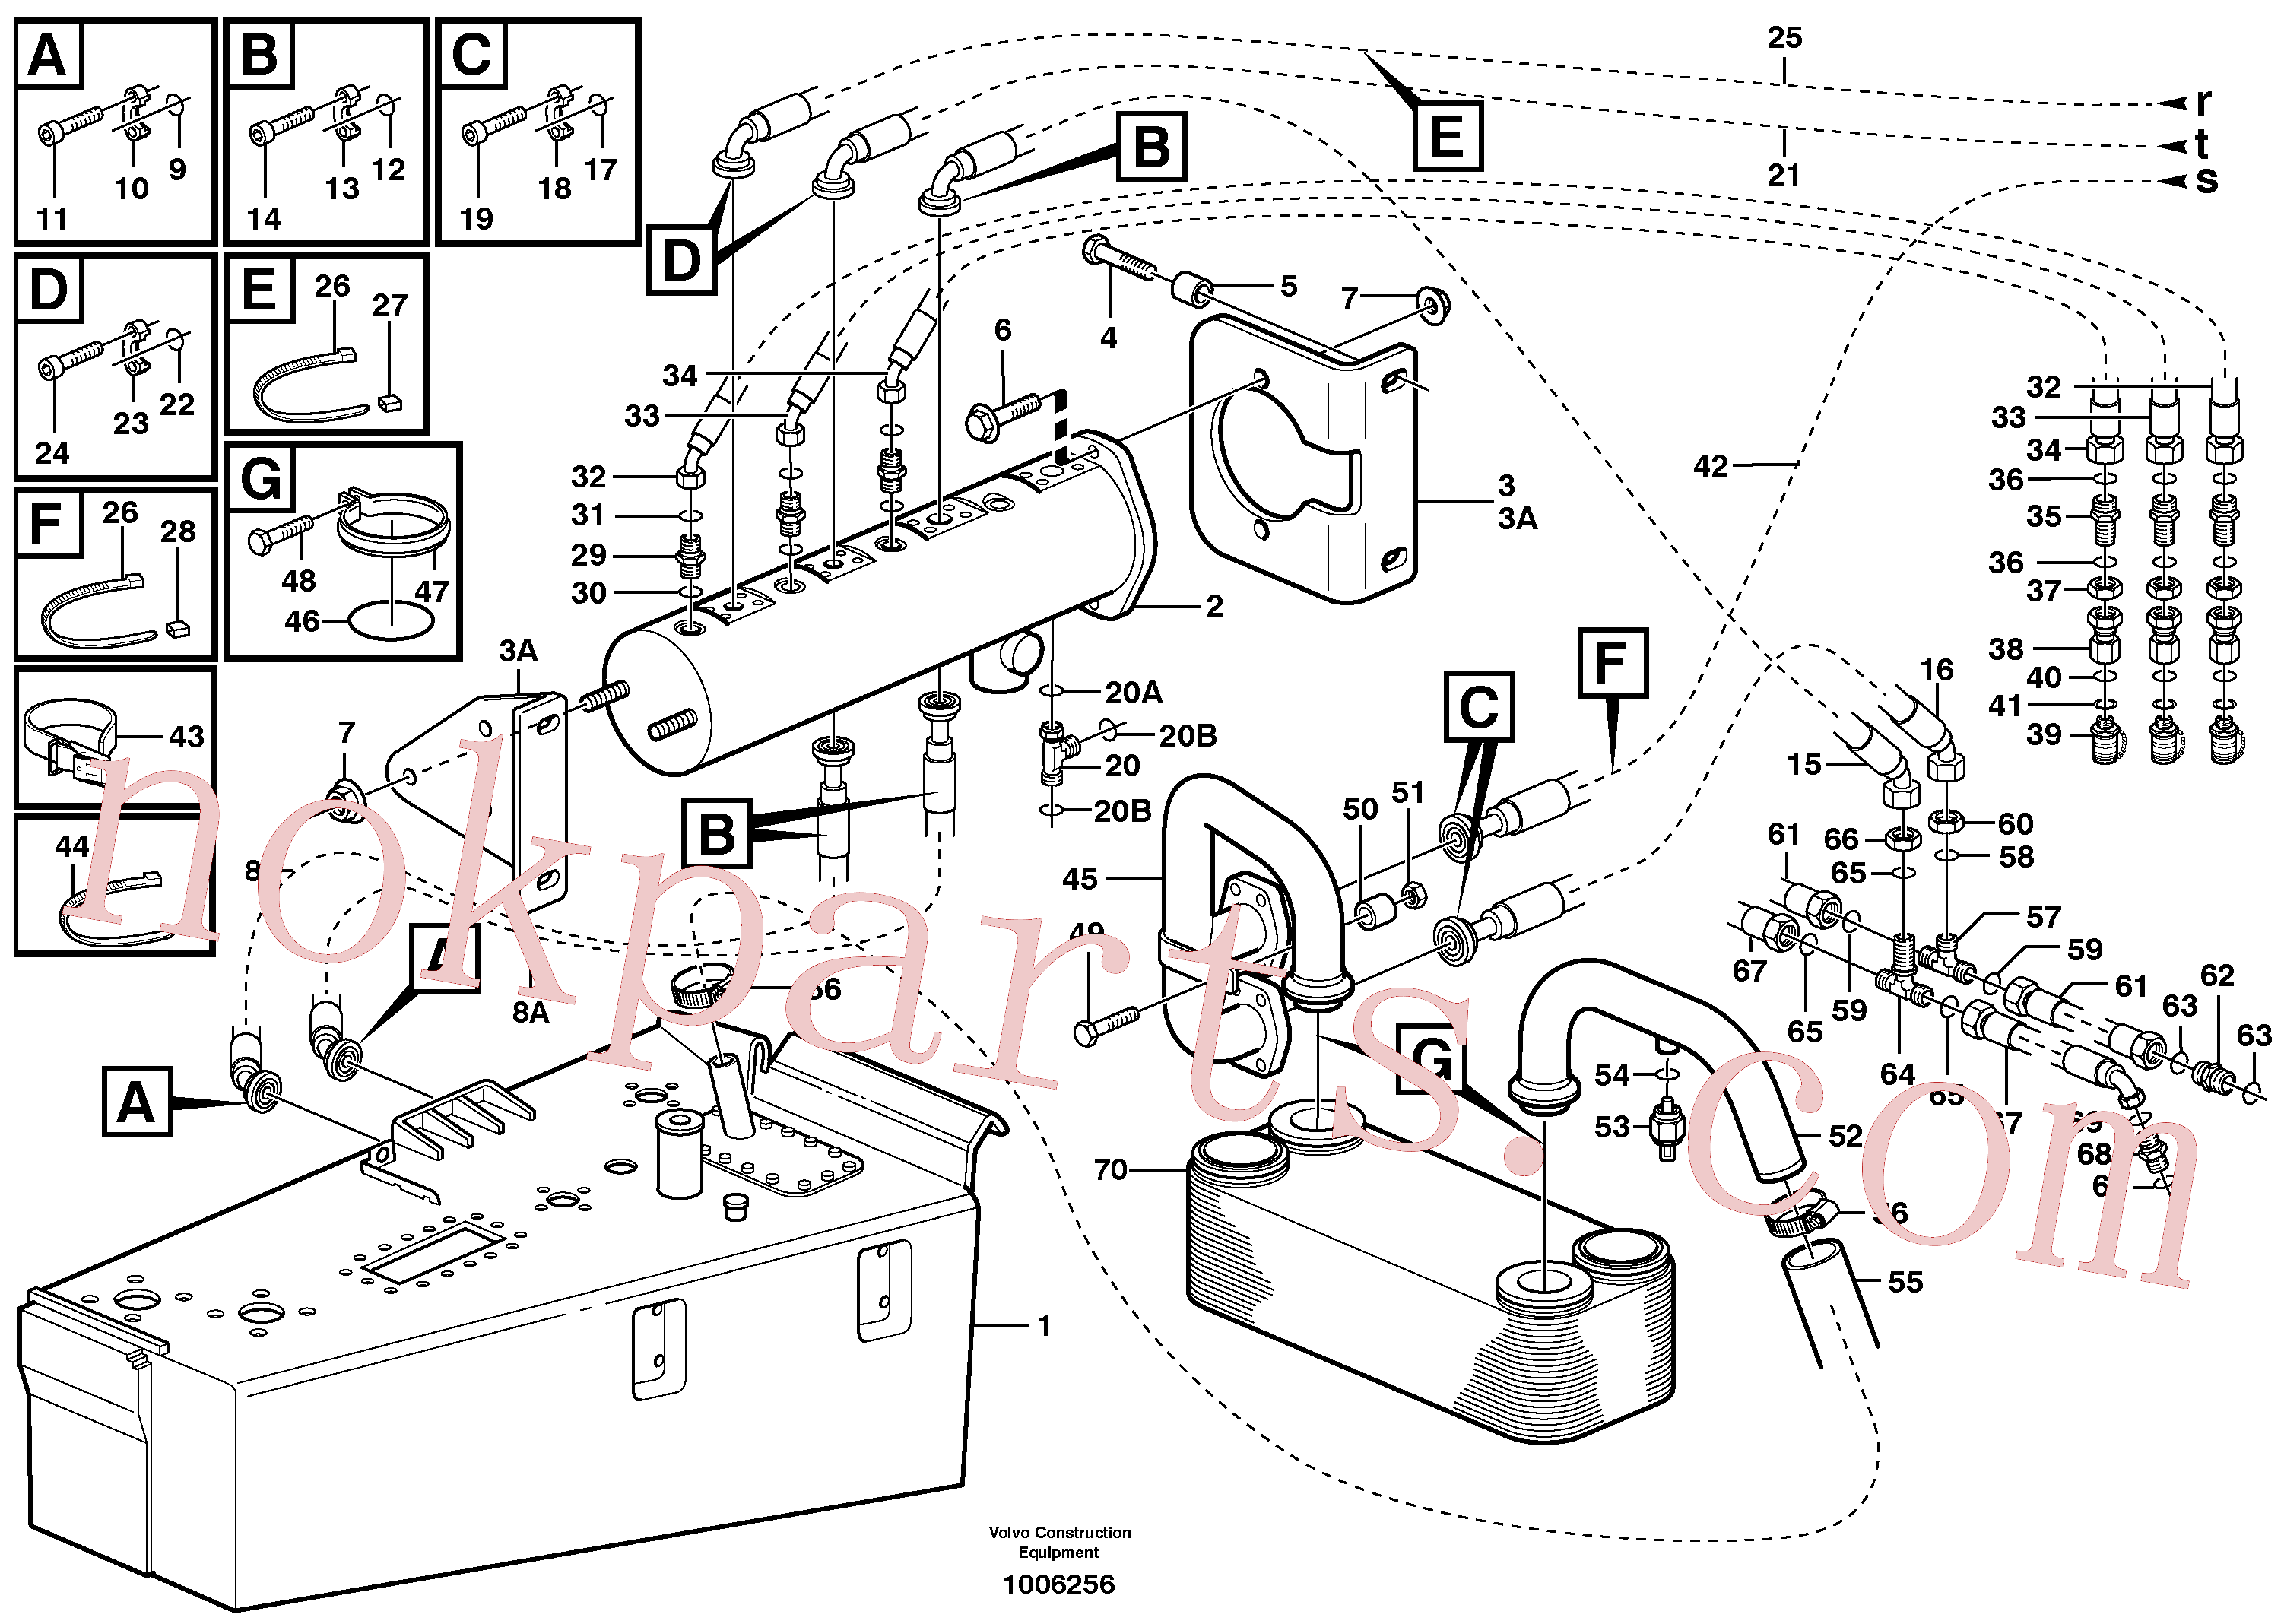 VOE11999448 for Volvo Brake cooling system(1006256 assembly)